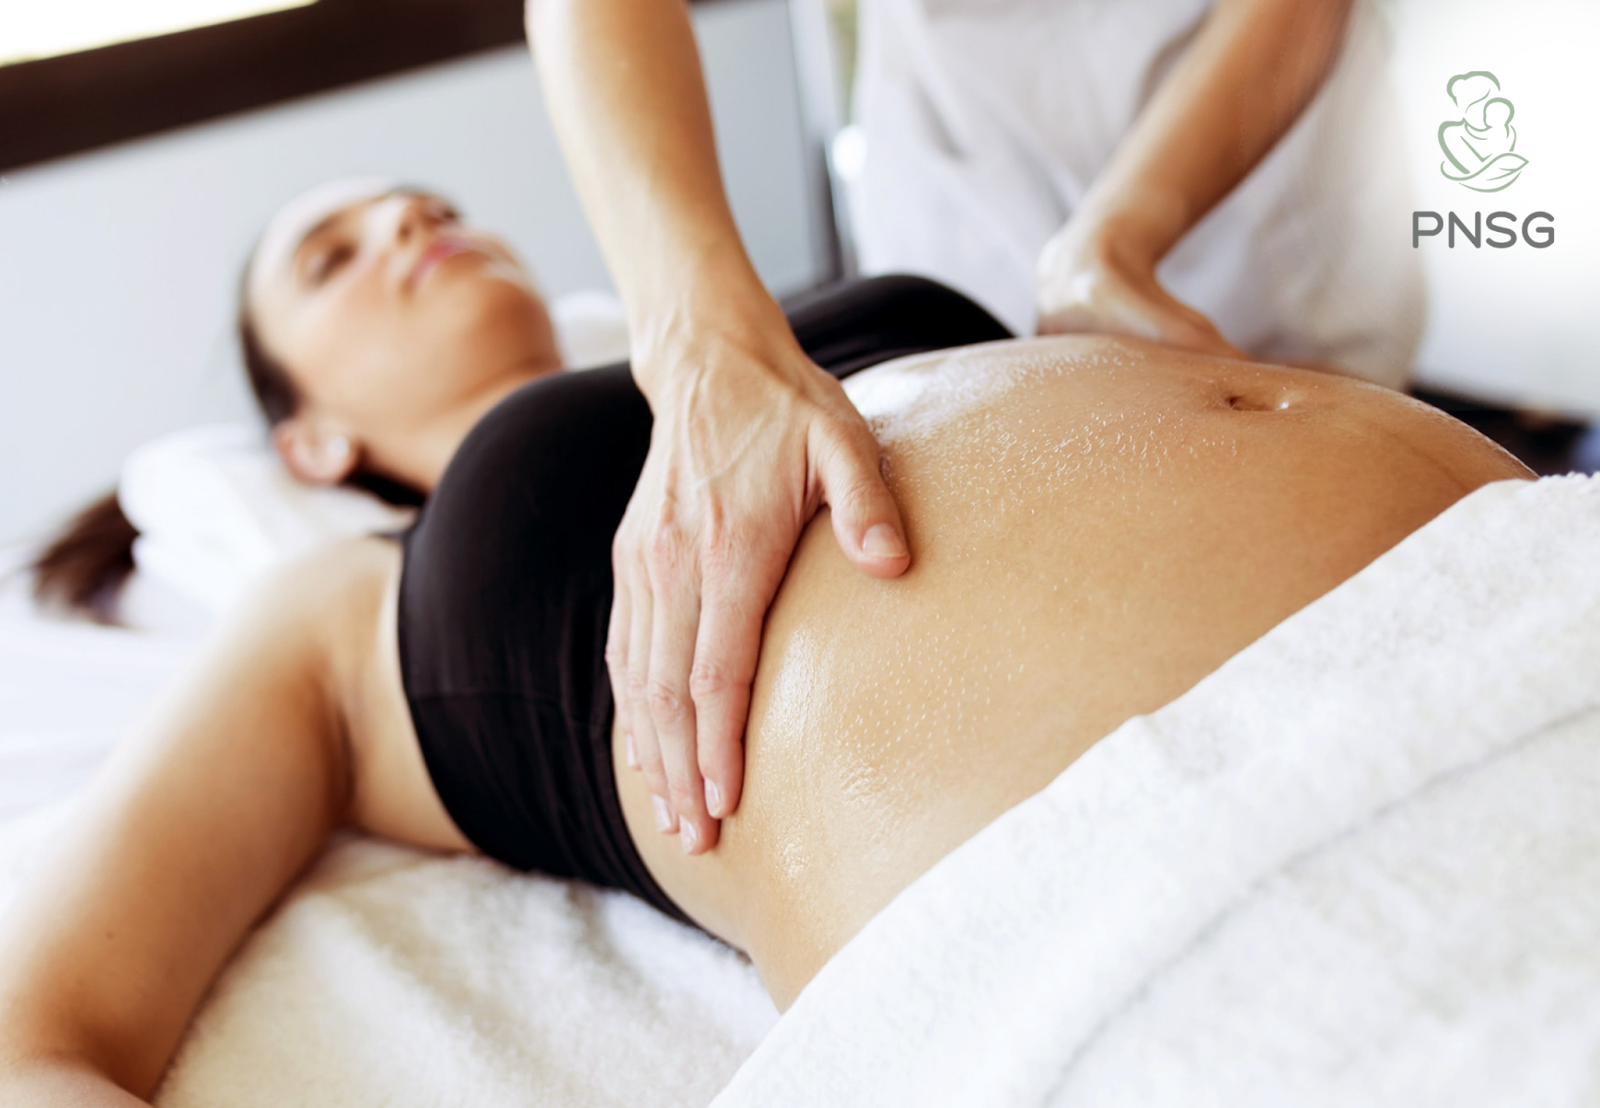 How to Physically and Mentally Prepare Yourself before Birth